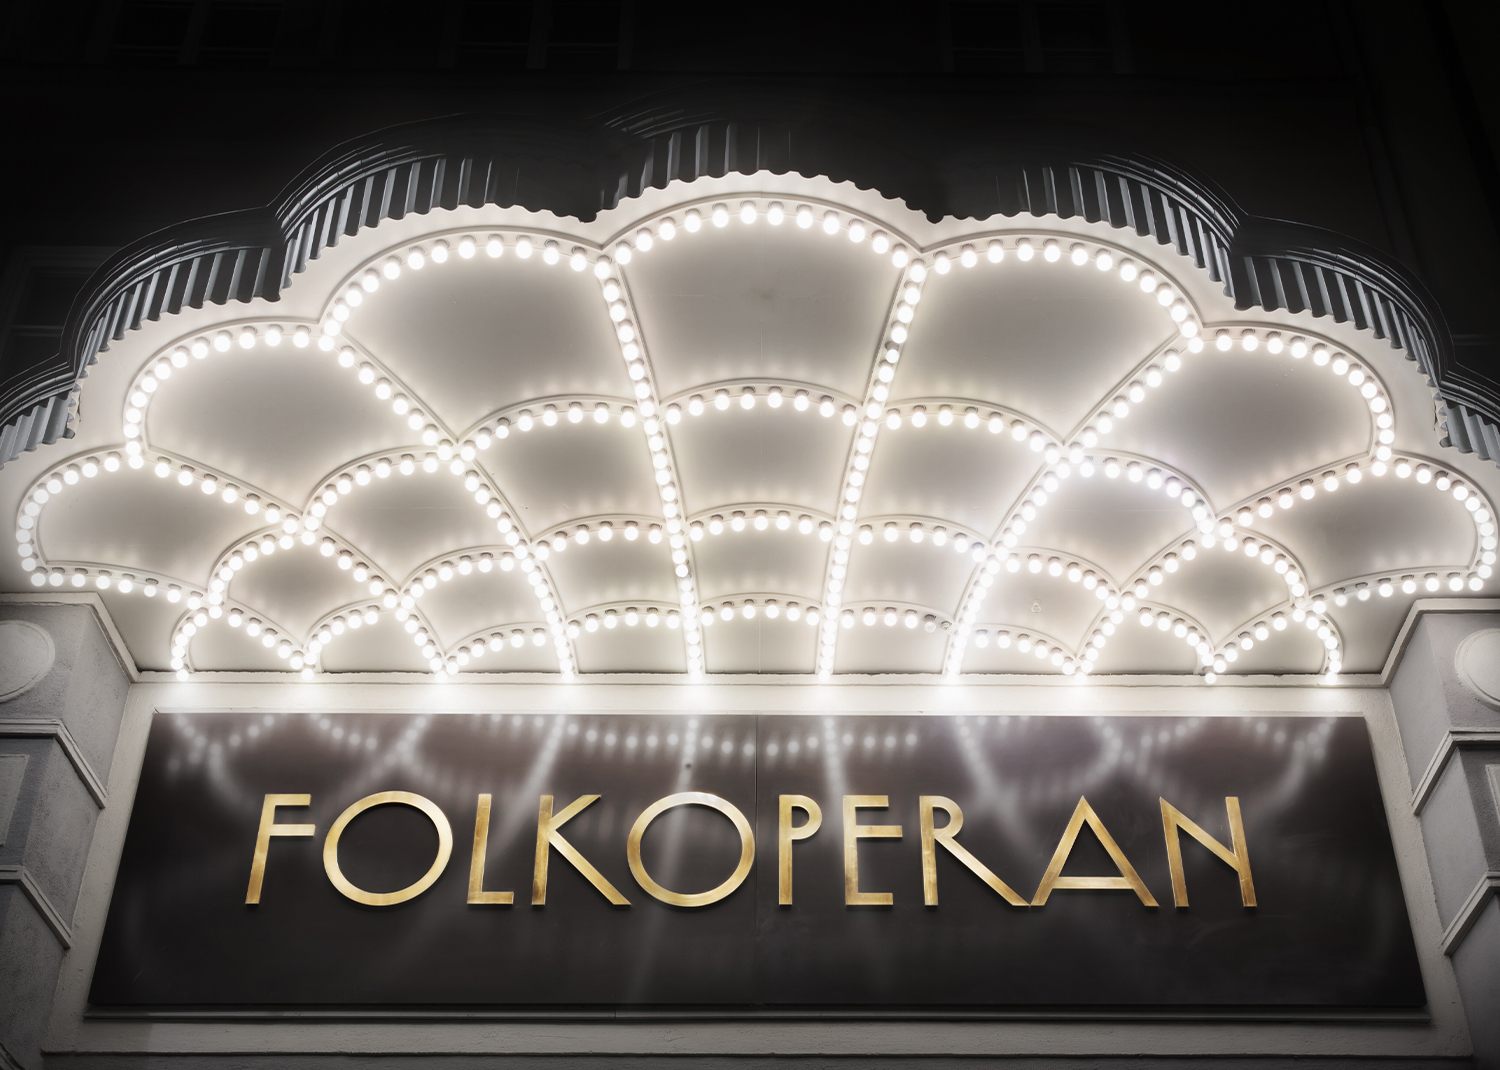 Folkoperan – People's opera house